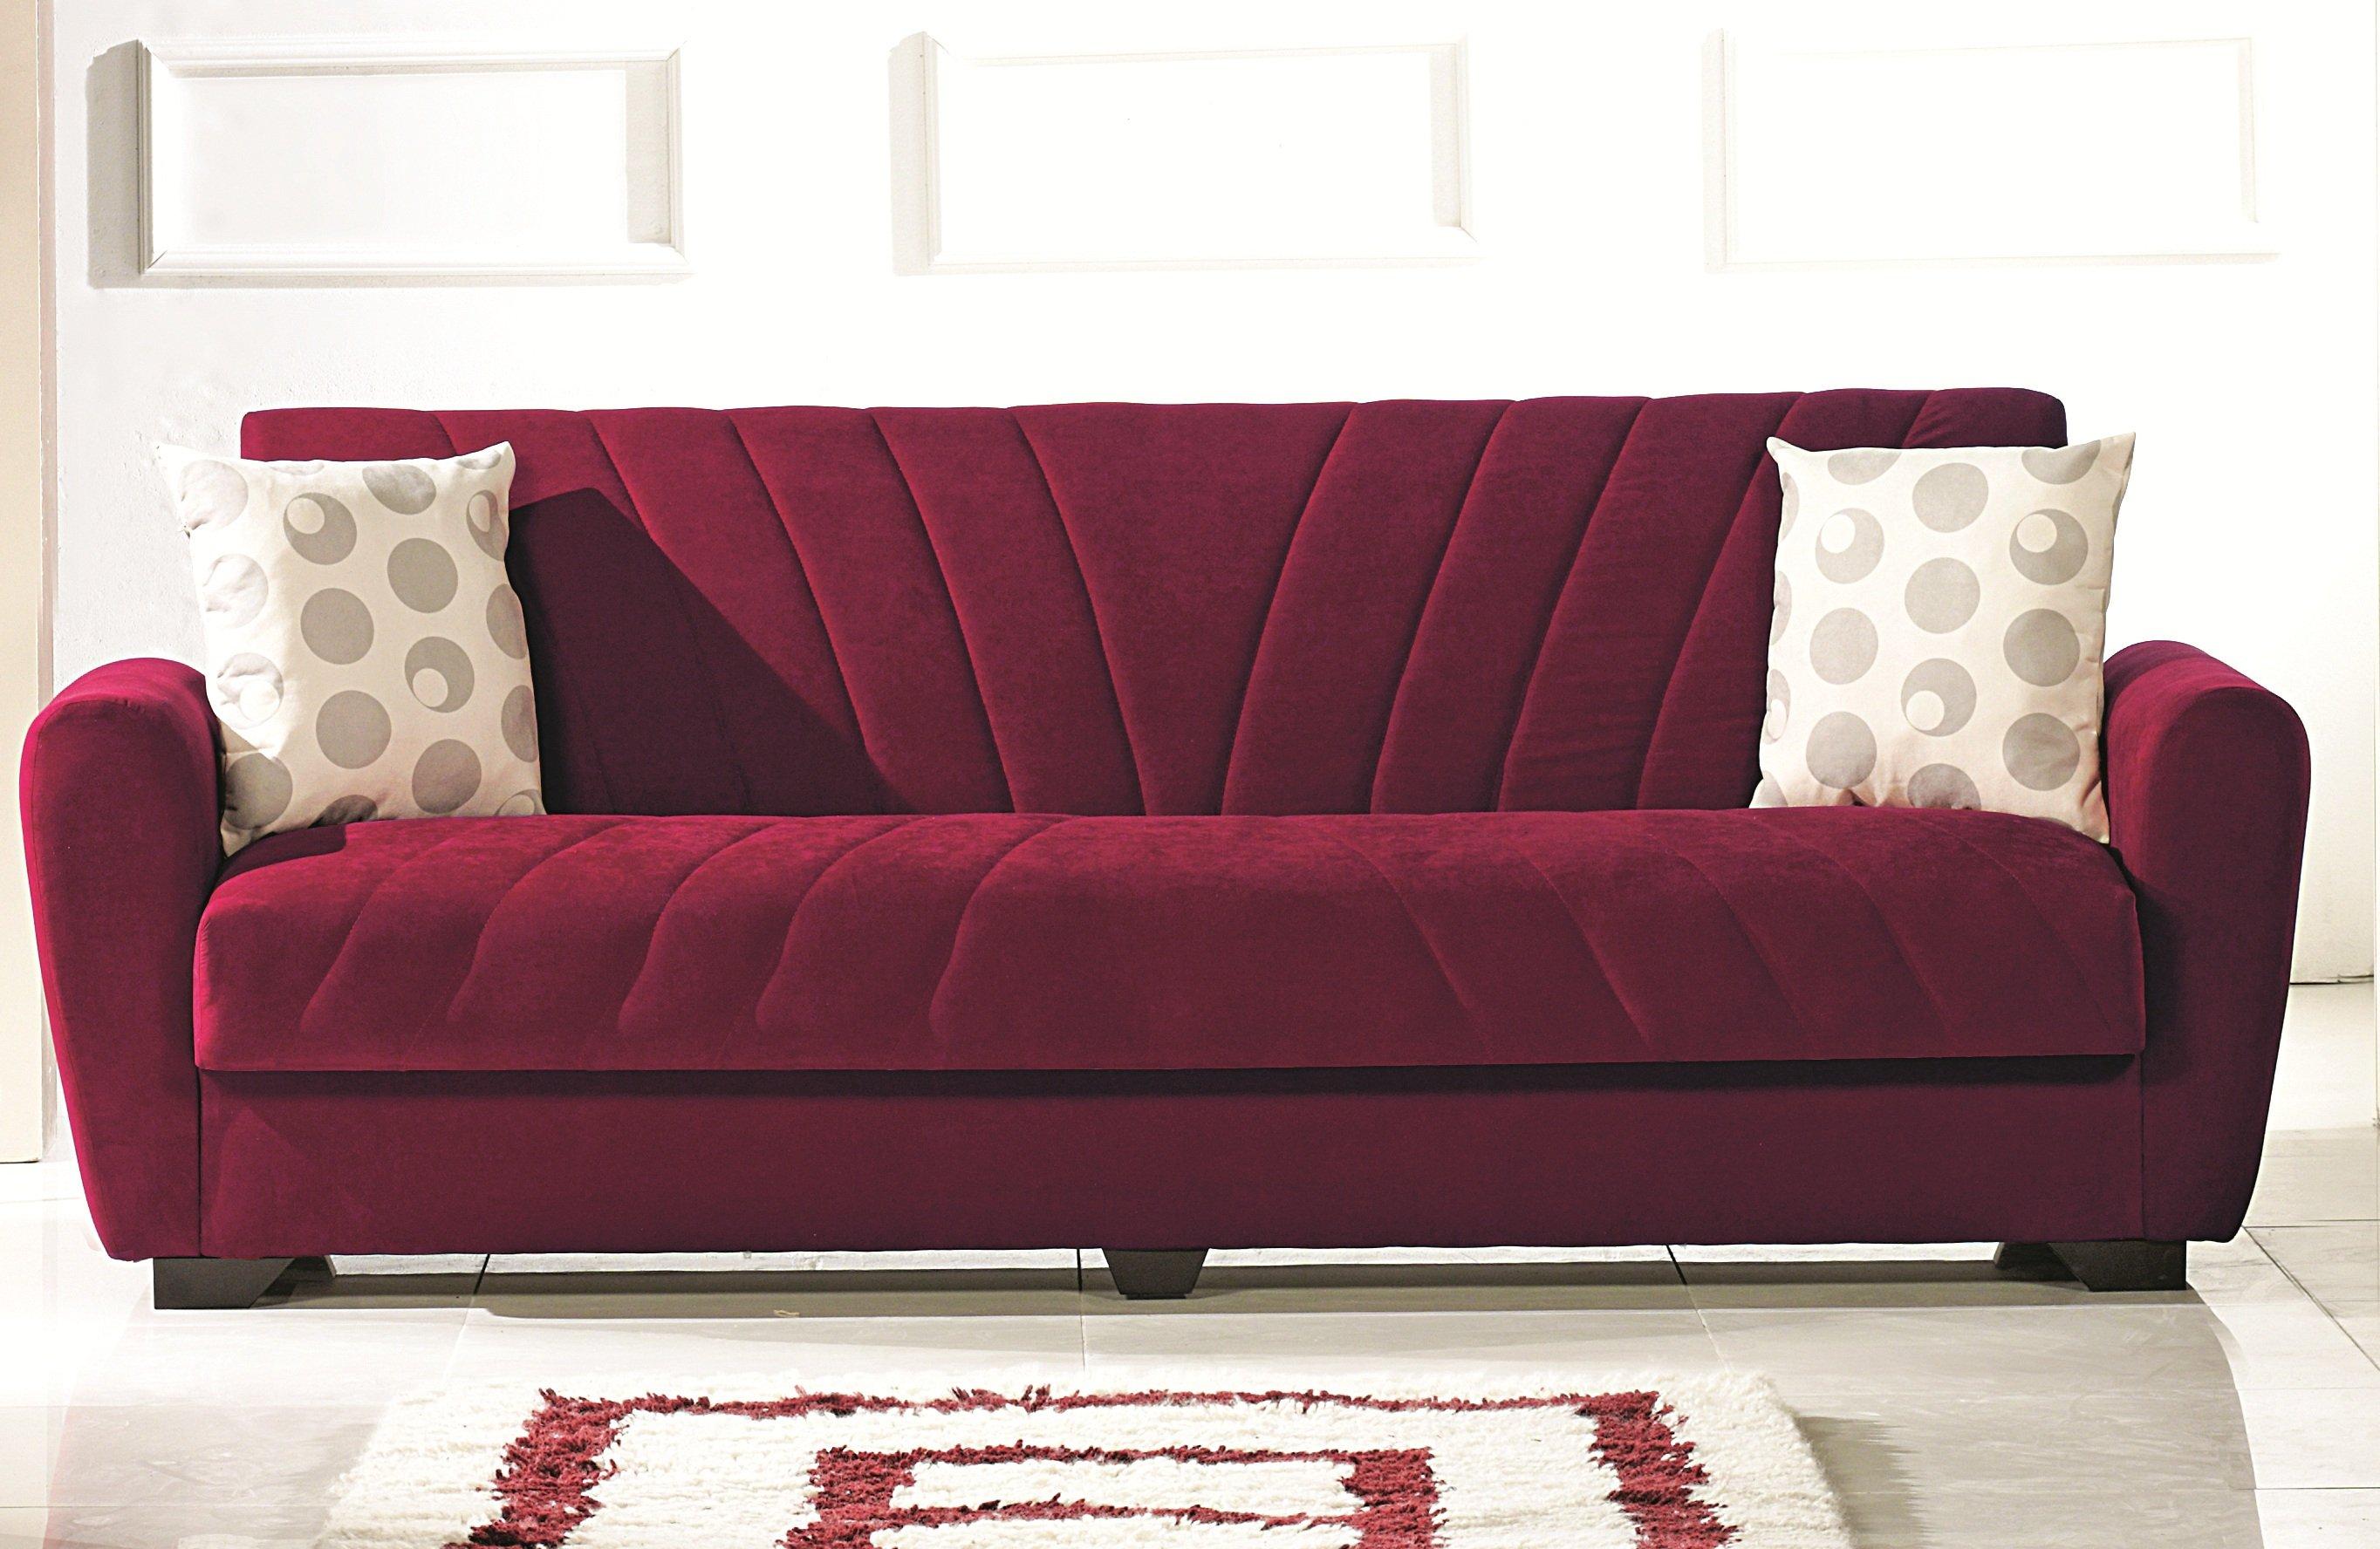 futons furniture leather surrey in coquitlam pwr austin store futon sectional air